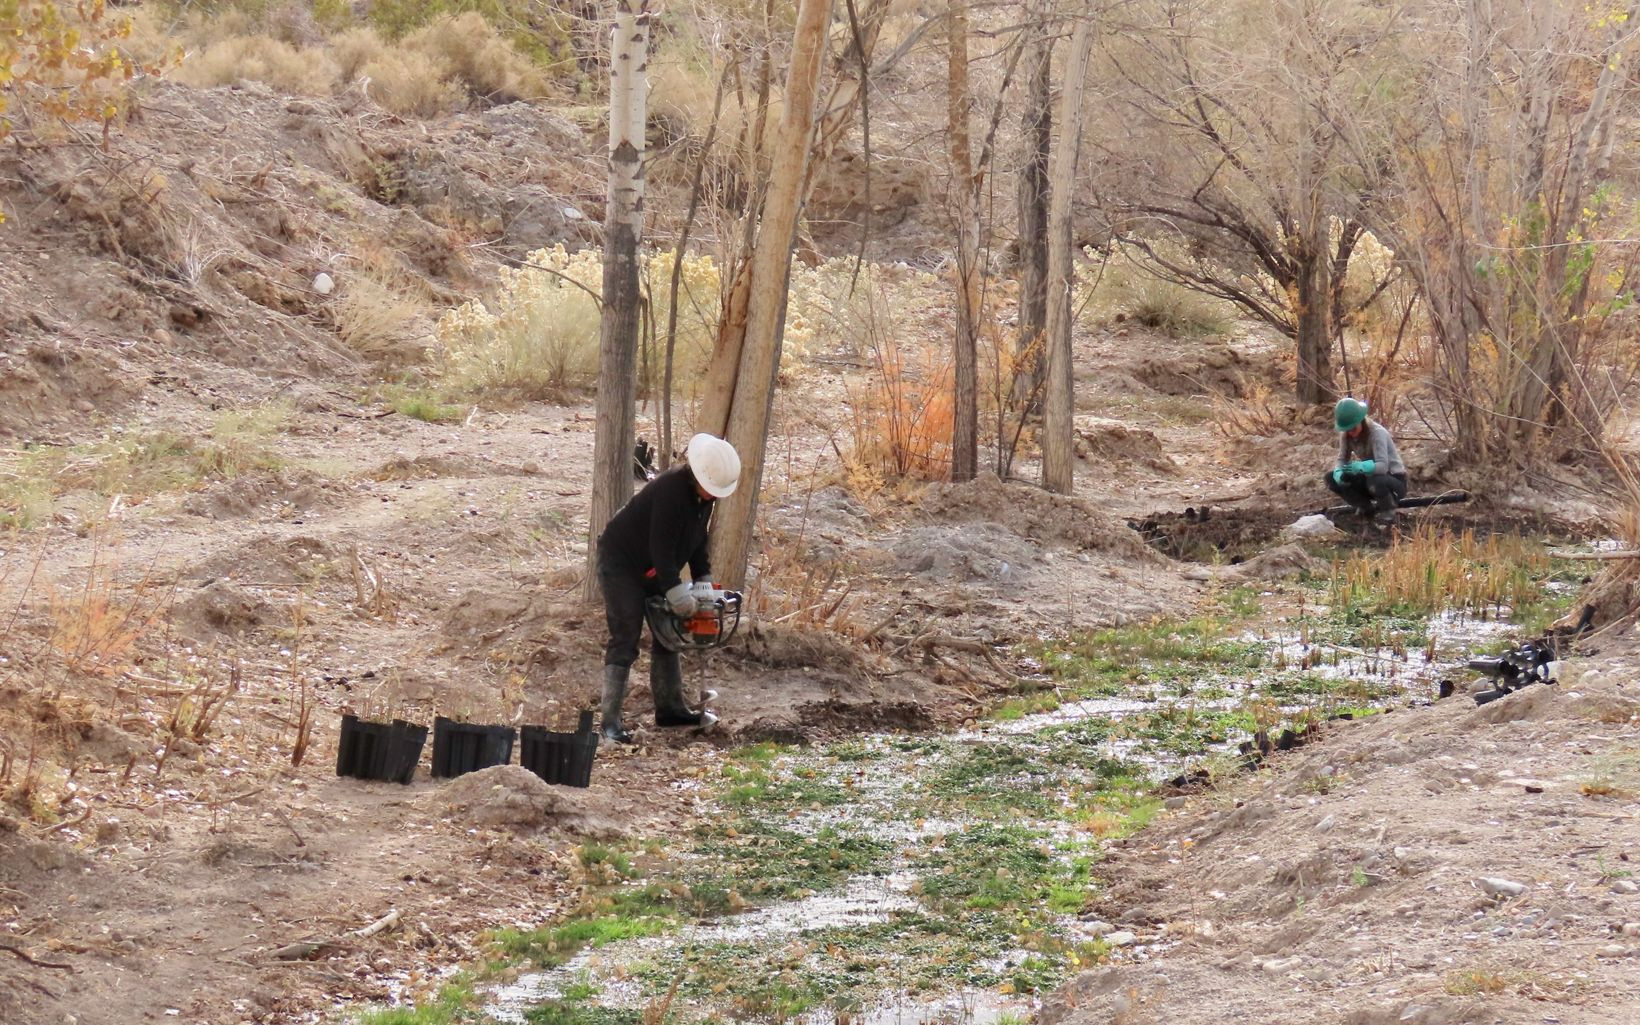 A worker in a hard hat uses an awl to drill a hole for tree planting next to a dry stream bed.